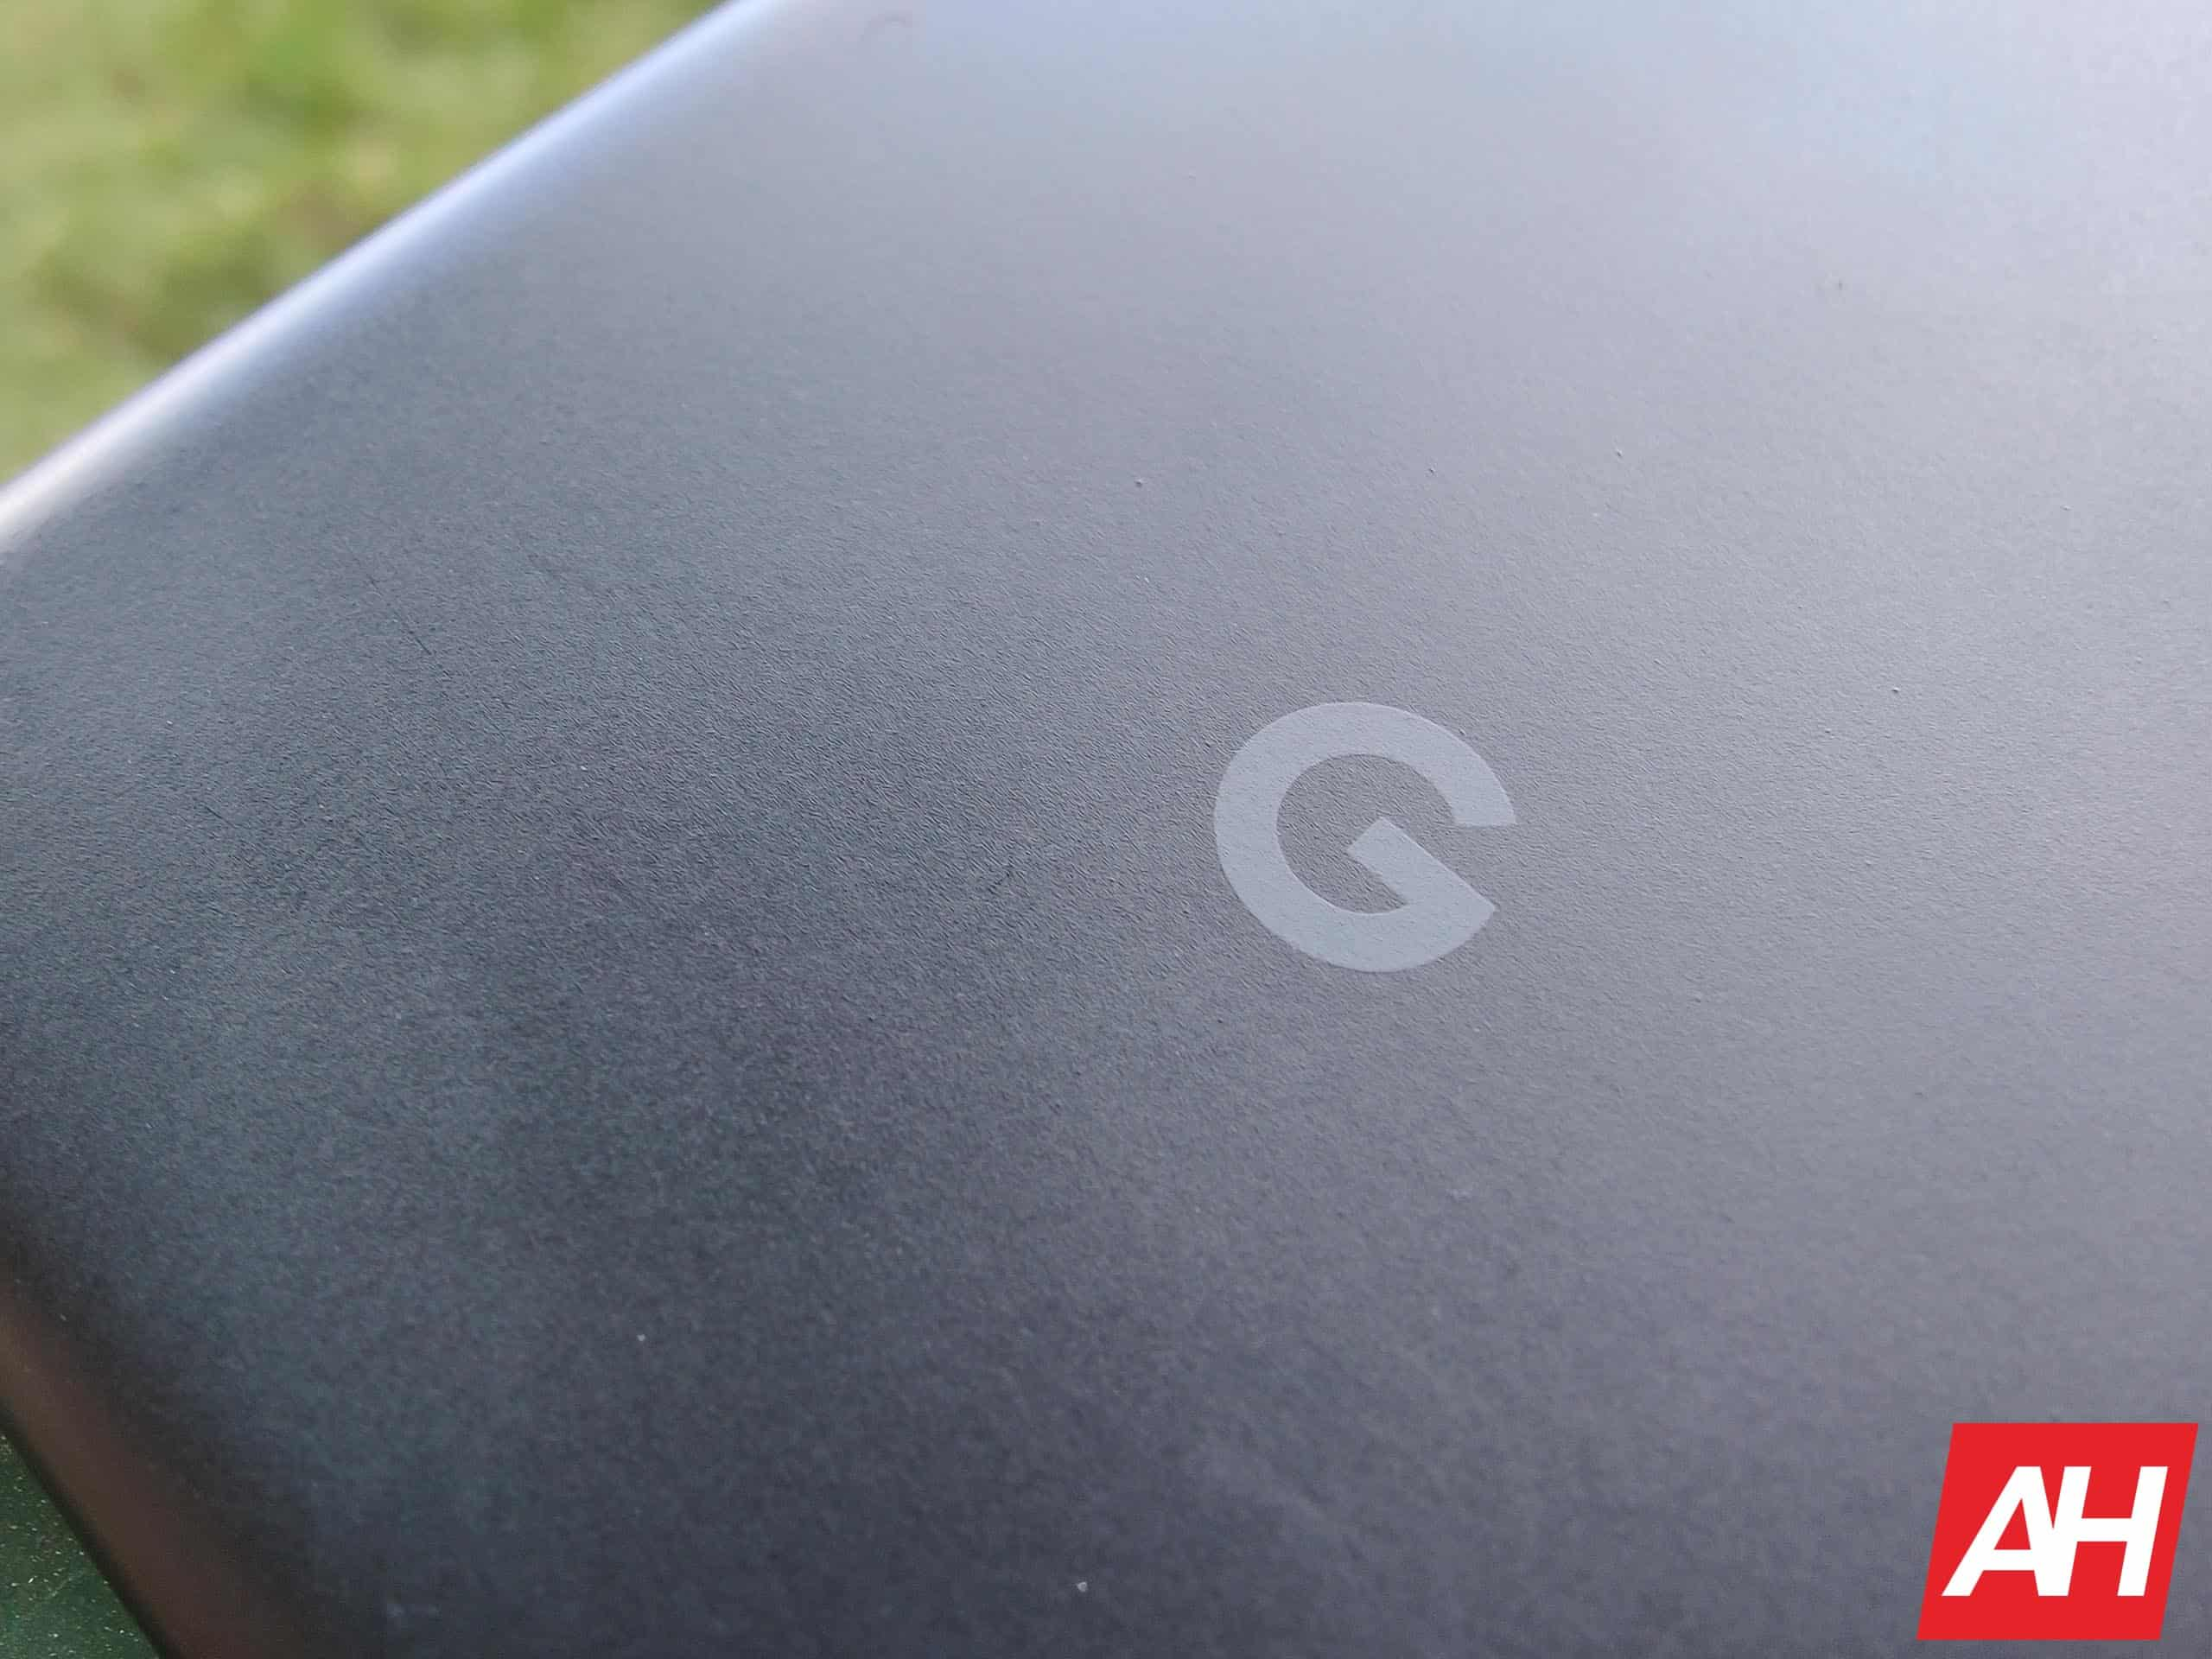 Google Pixel 4a Review AM AH 13